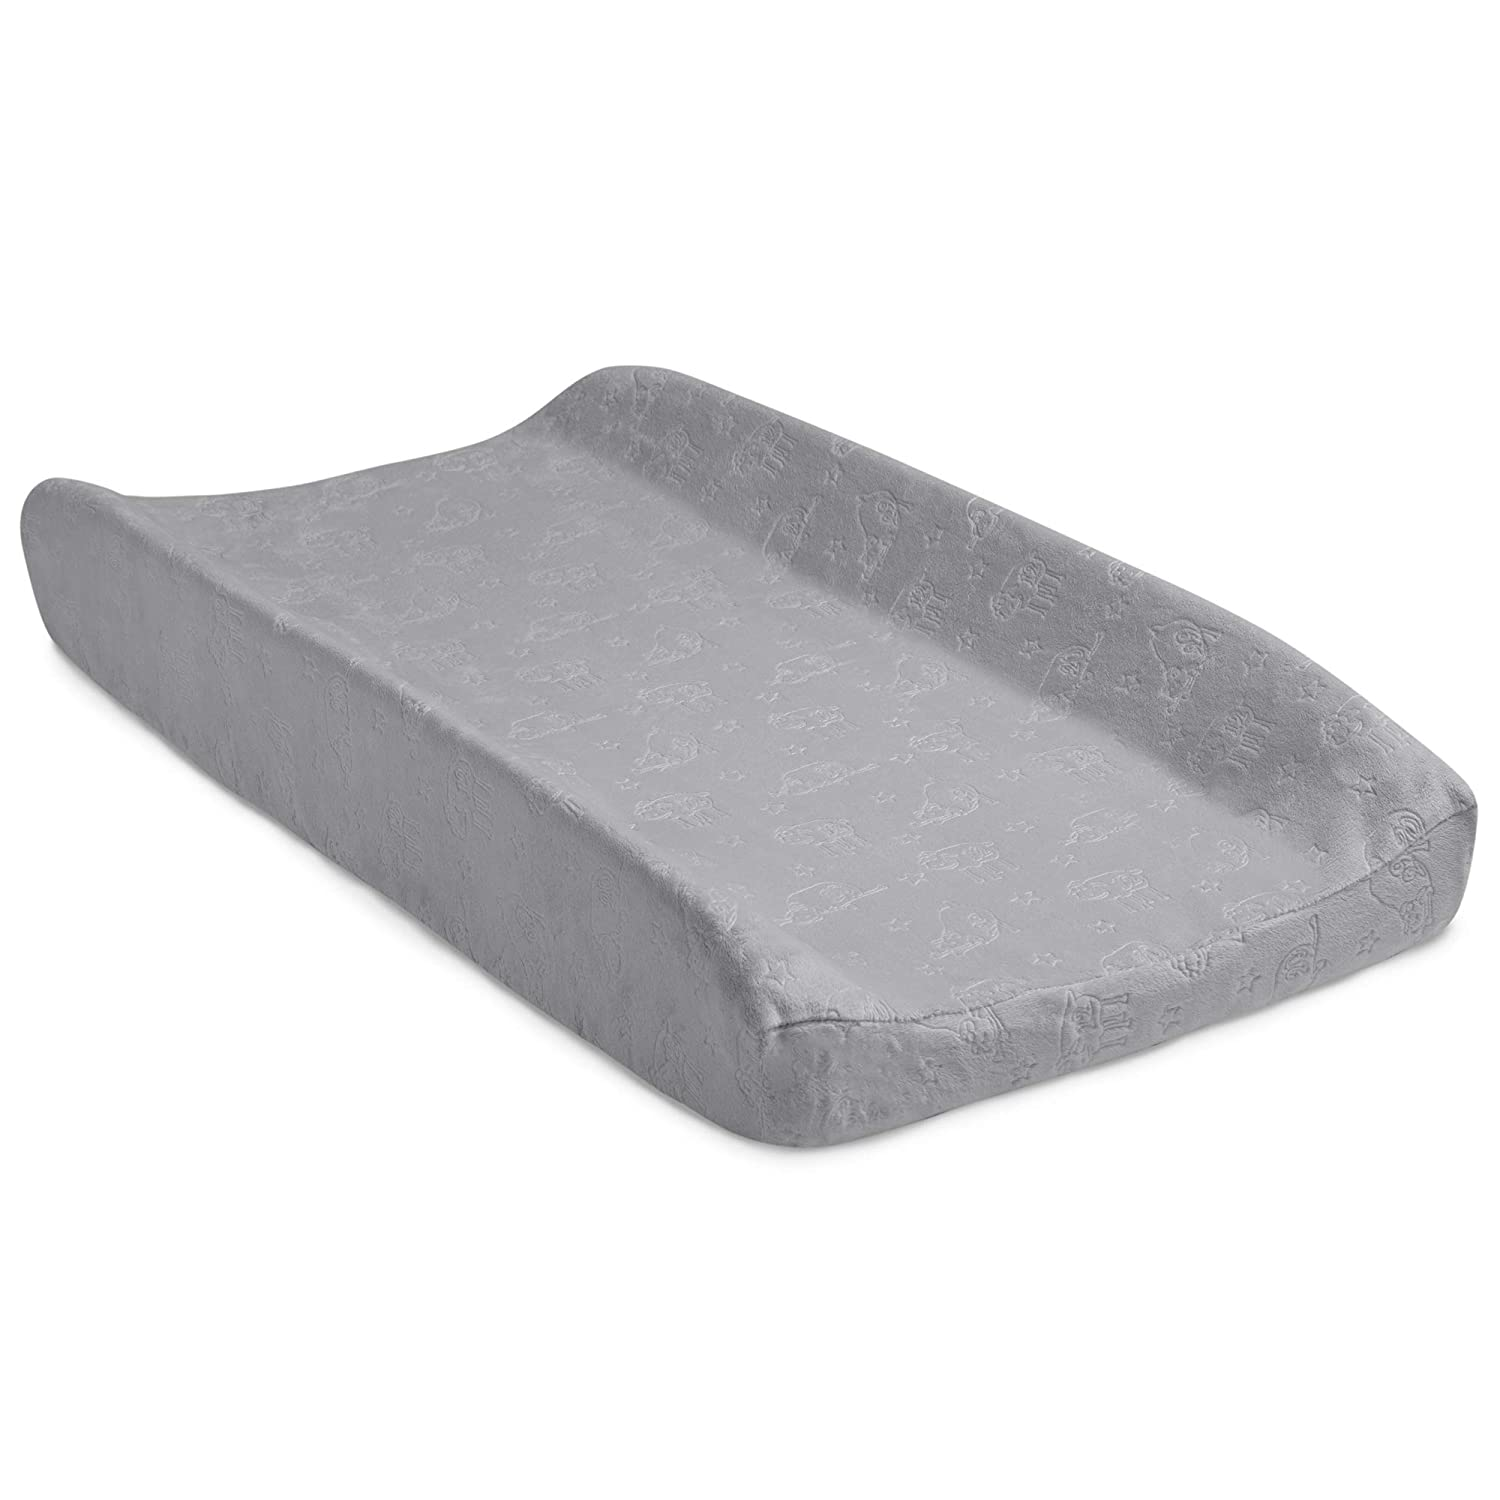 Serta Perfect Sleeper Contoured Changing Pad with Plush Cover, Grey